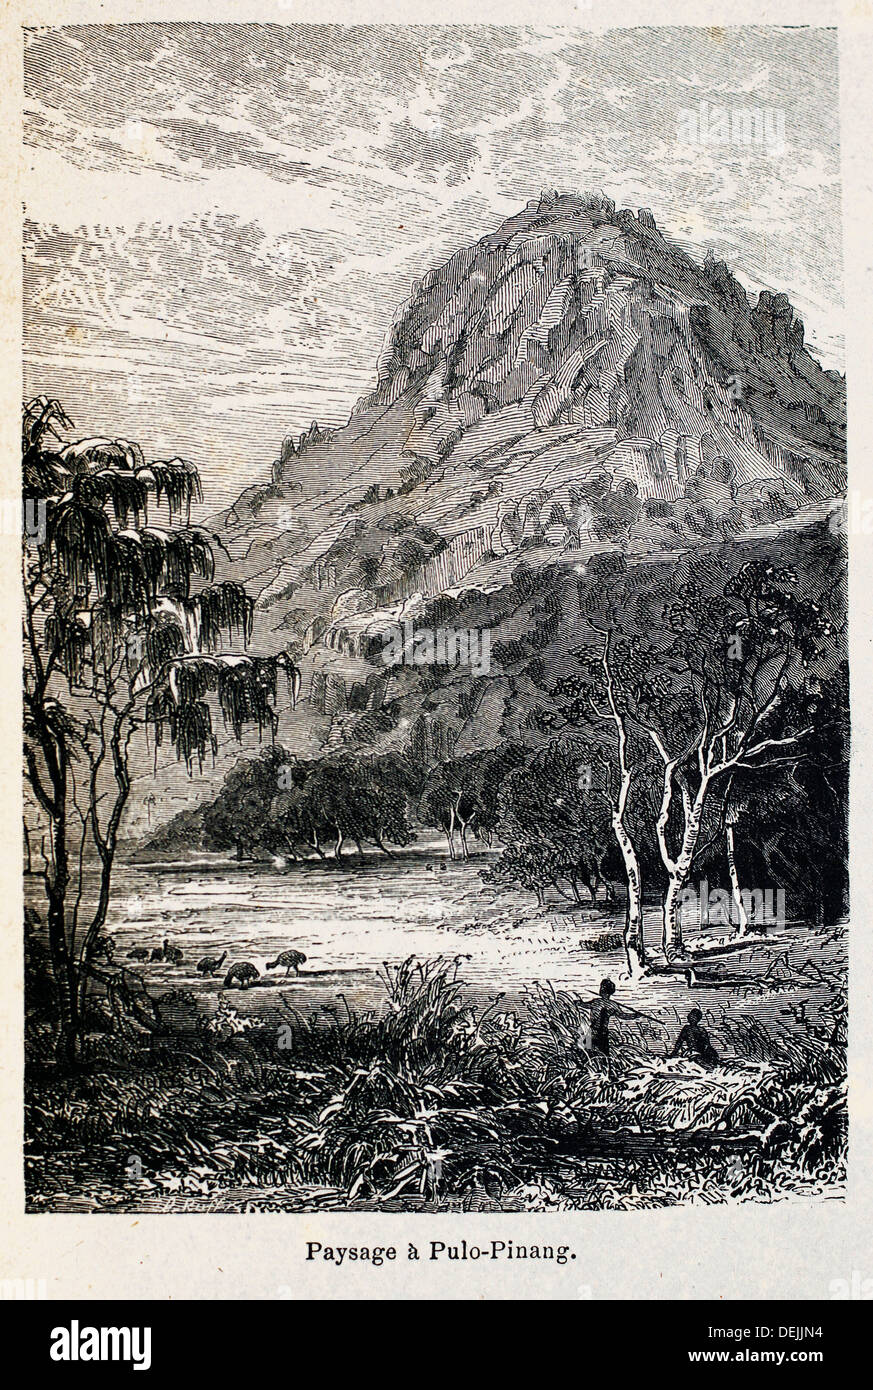 France, Madagascar: ´Paysage à Pulo-Pinang´, from the book ´Madagascar, la reine des Iles Africaines´, 1883 - Stock Image